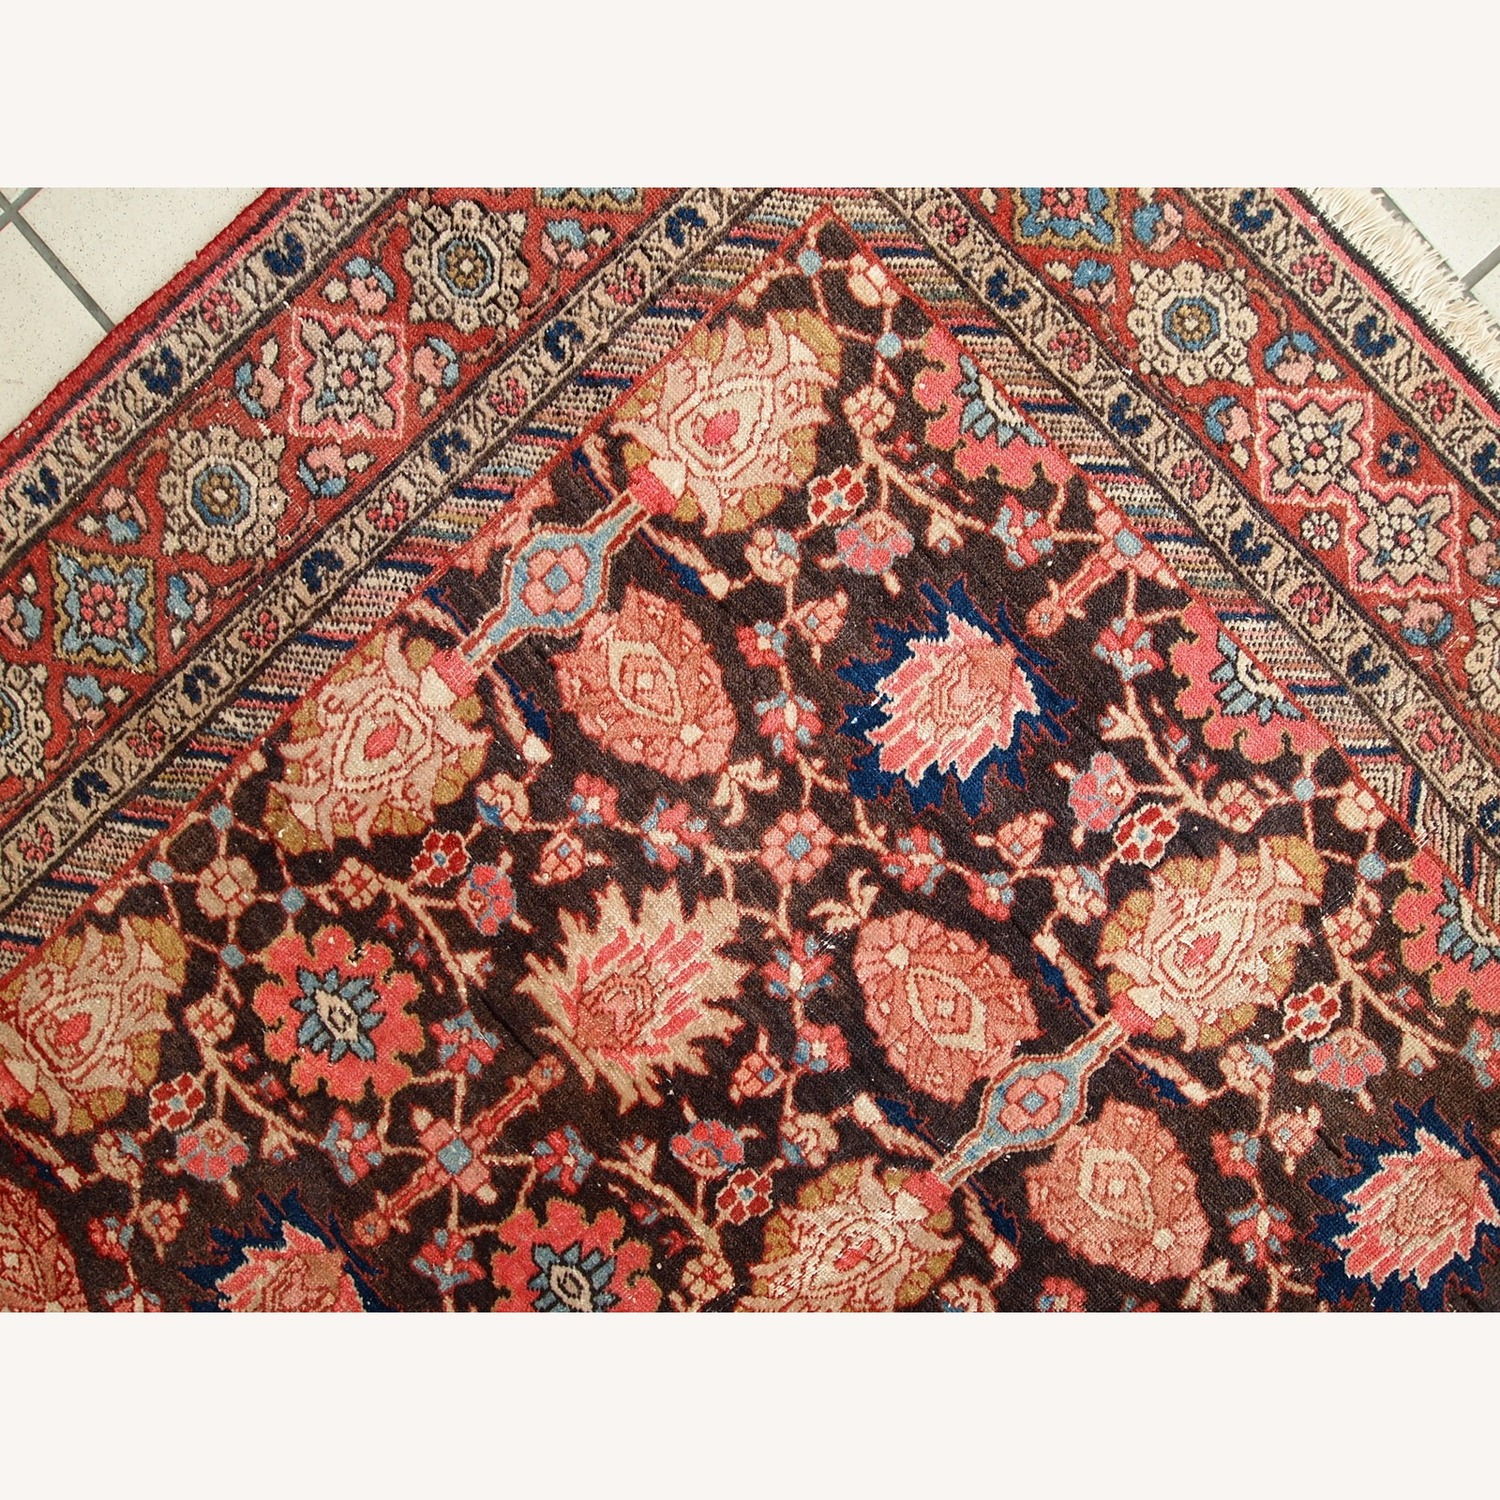 Handmade Antique Persian Bidjar Rug - image-11